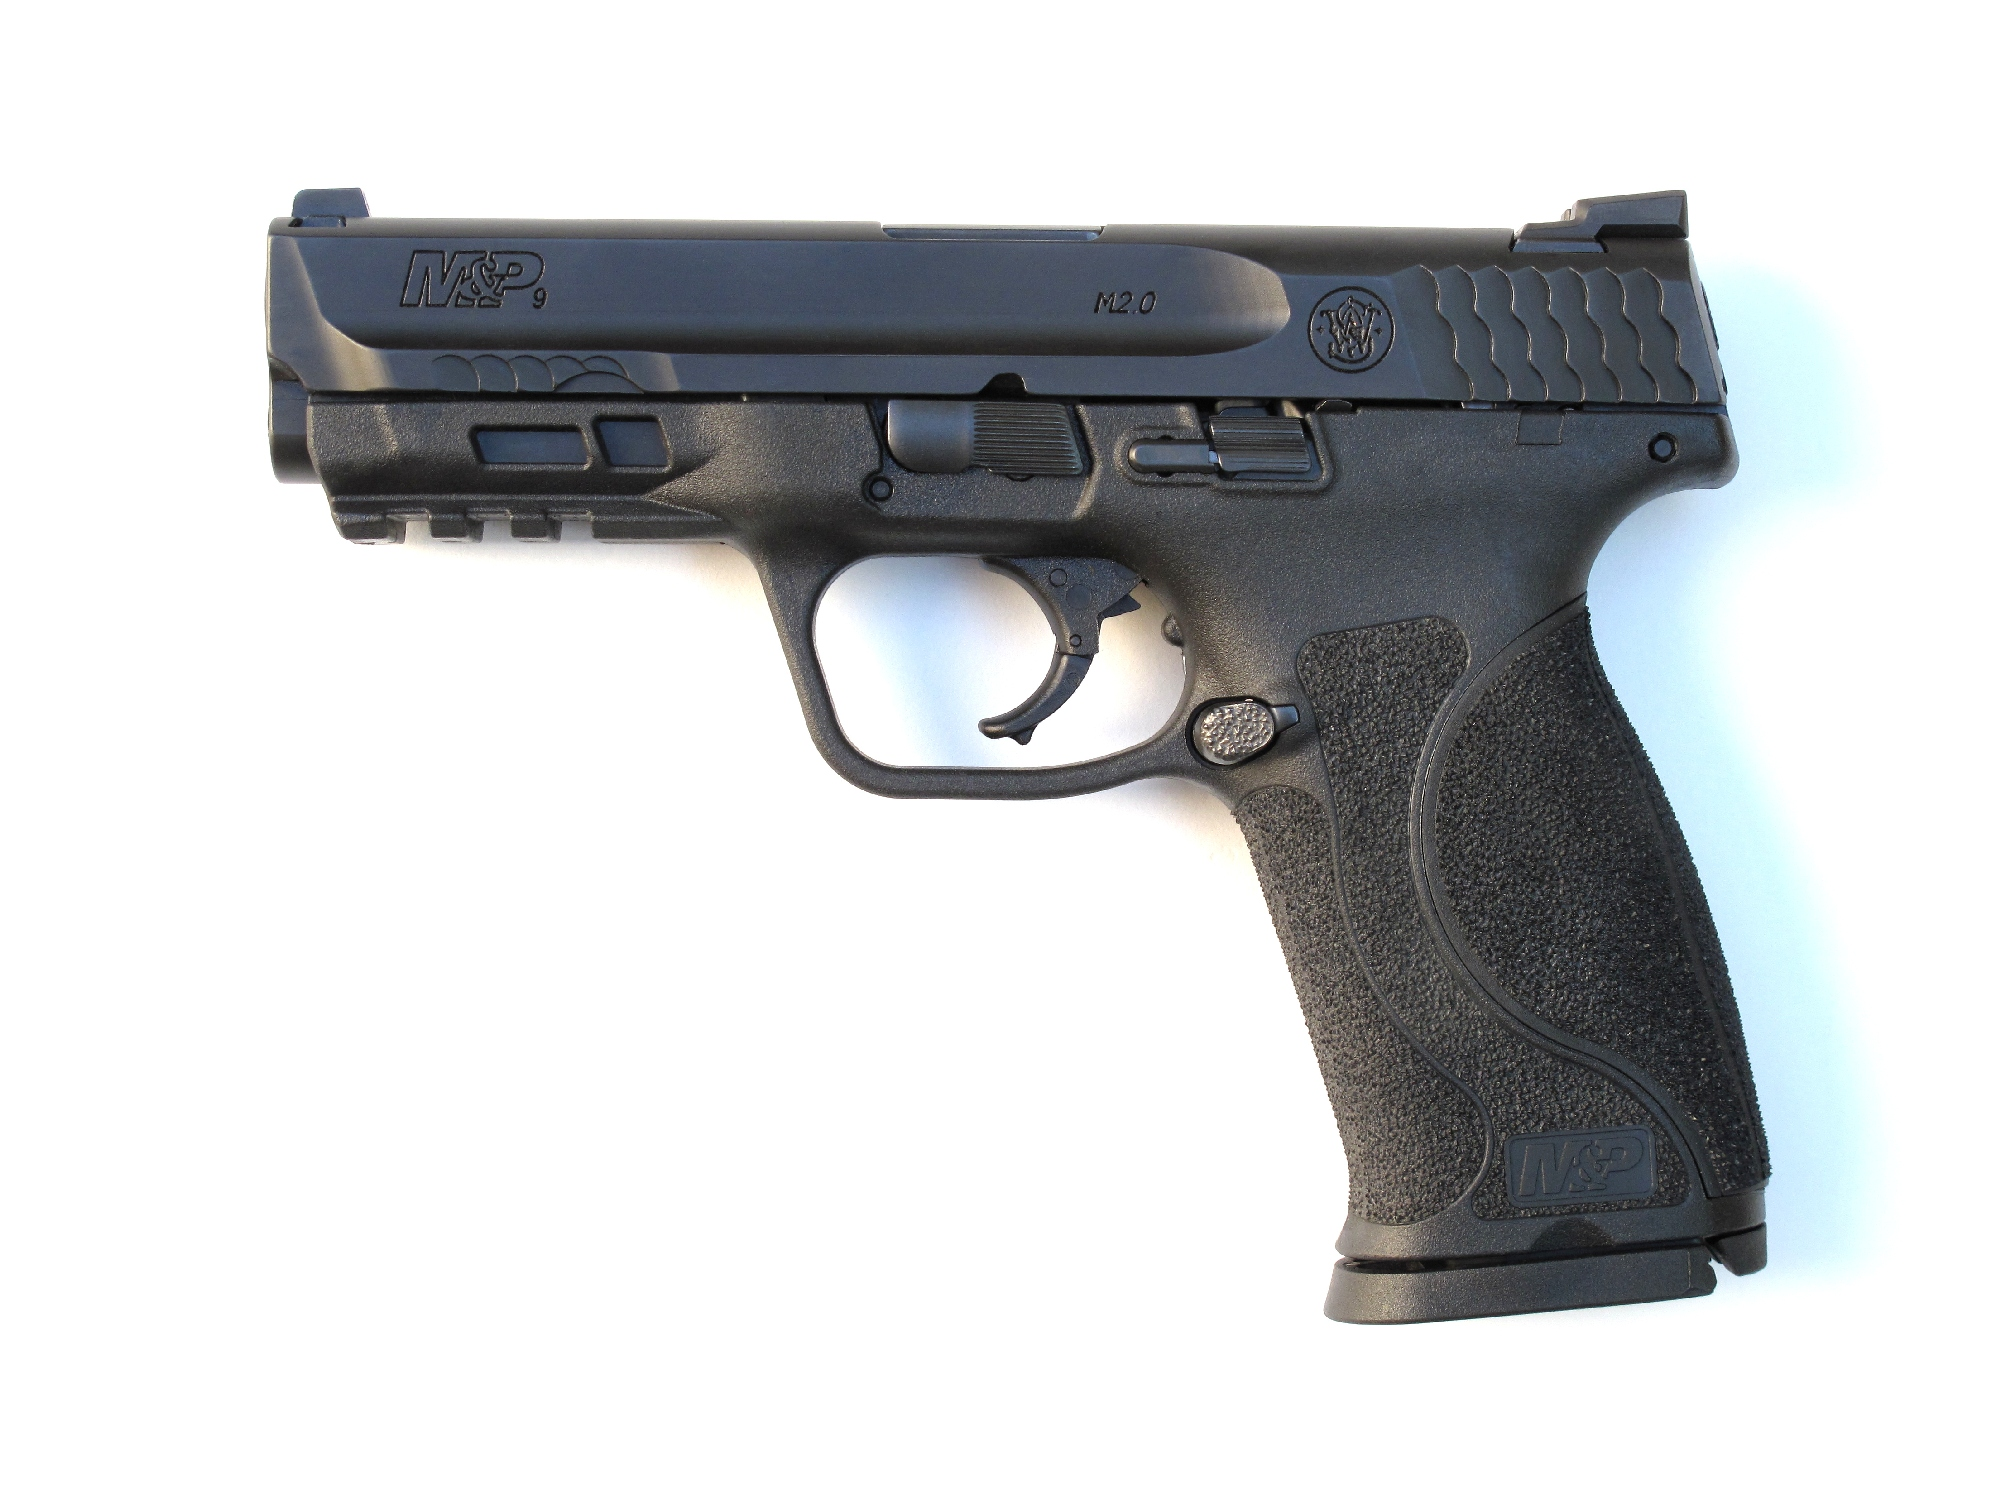 Pistolet semi-automatique S&W M&P9 M2.0 en calibre 9 mm Parabellum